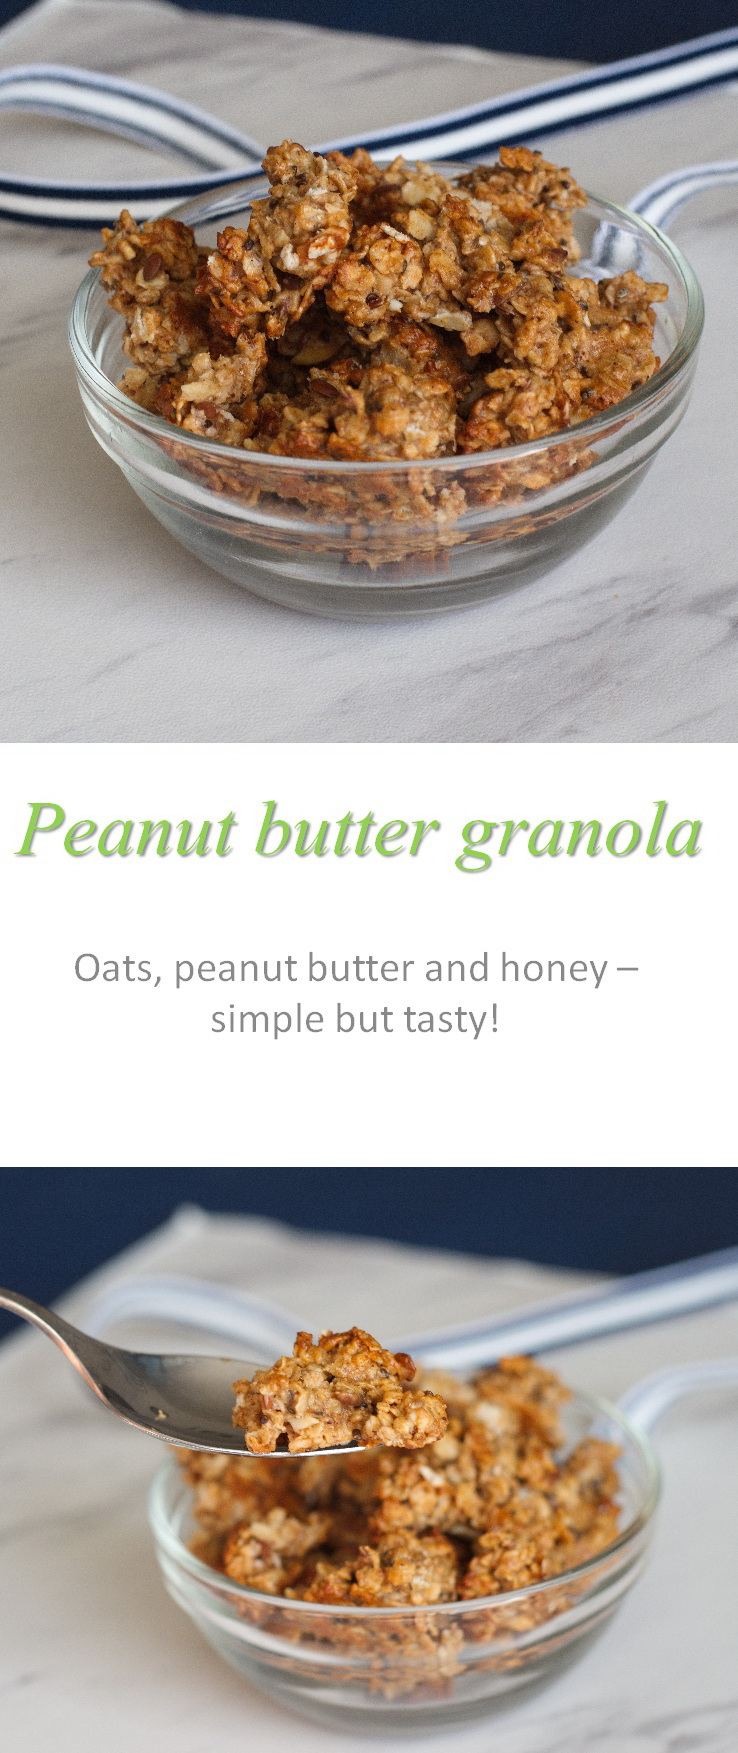 The combination of peanut butter, honey, cinnamon and vanilla gives this peanut butter granola a nice sweetness, but not too much. Toasting the oats gives a great crunch! #granola